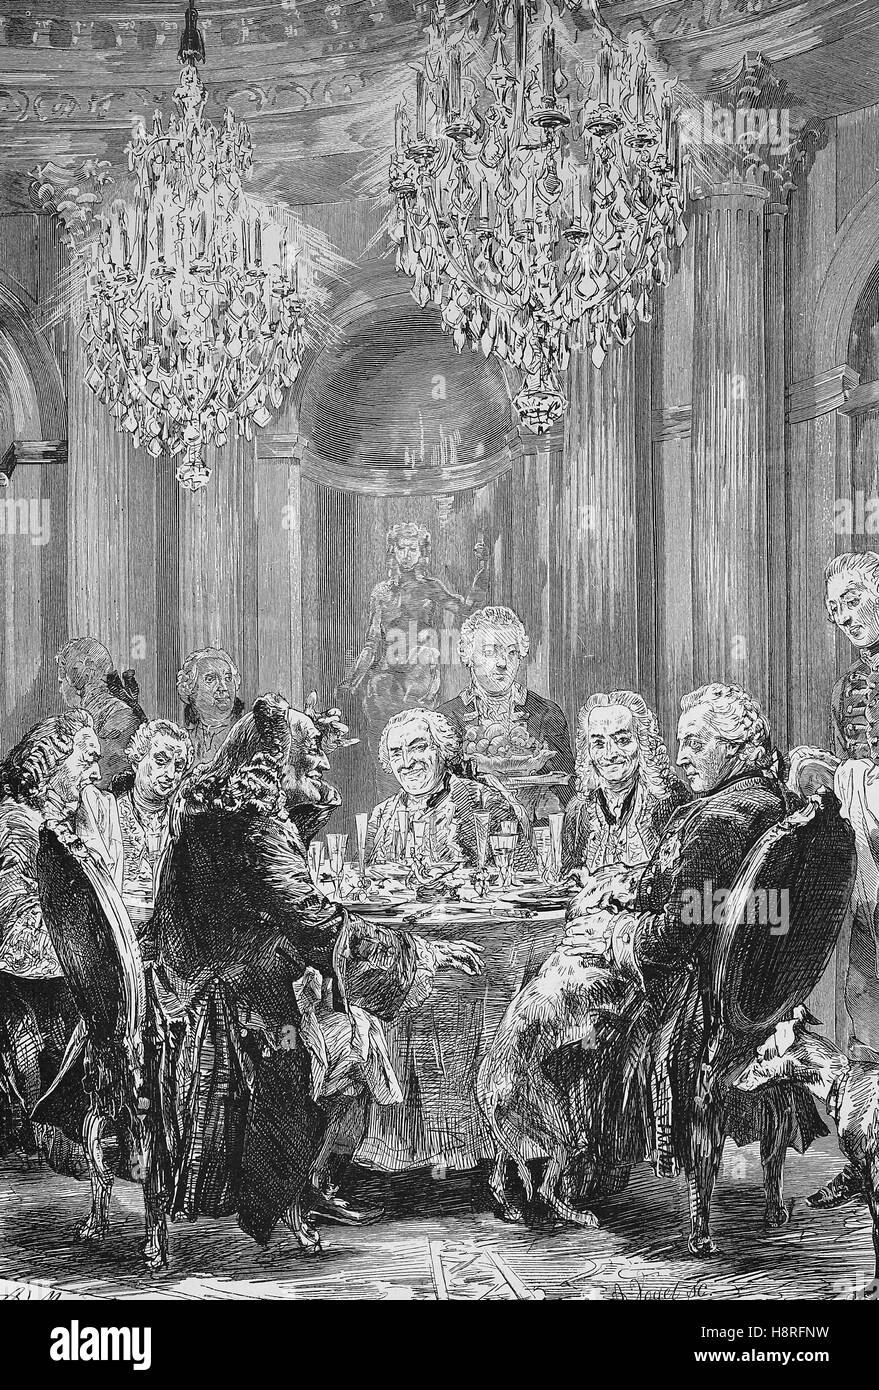 Frederick II. was King of Prussia, his round table at Sanssouci, Germany - Stock Image